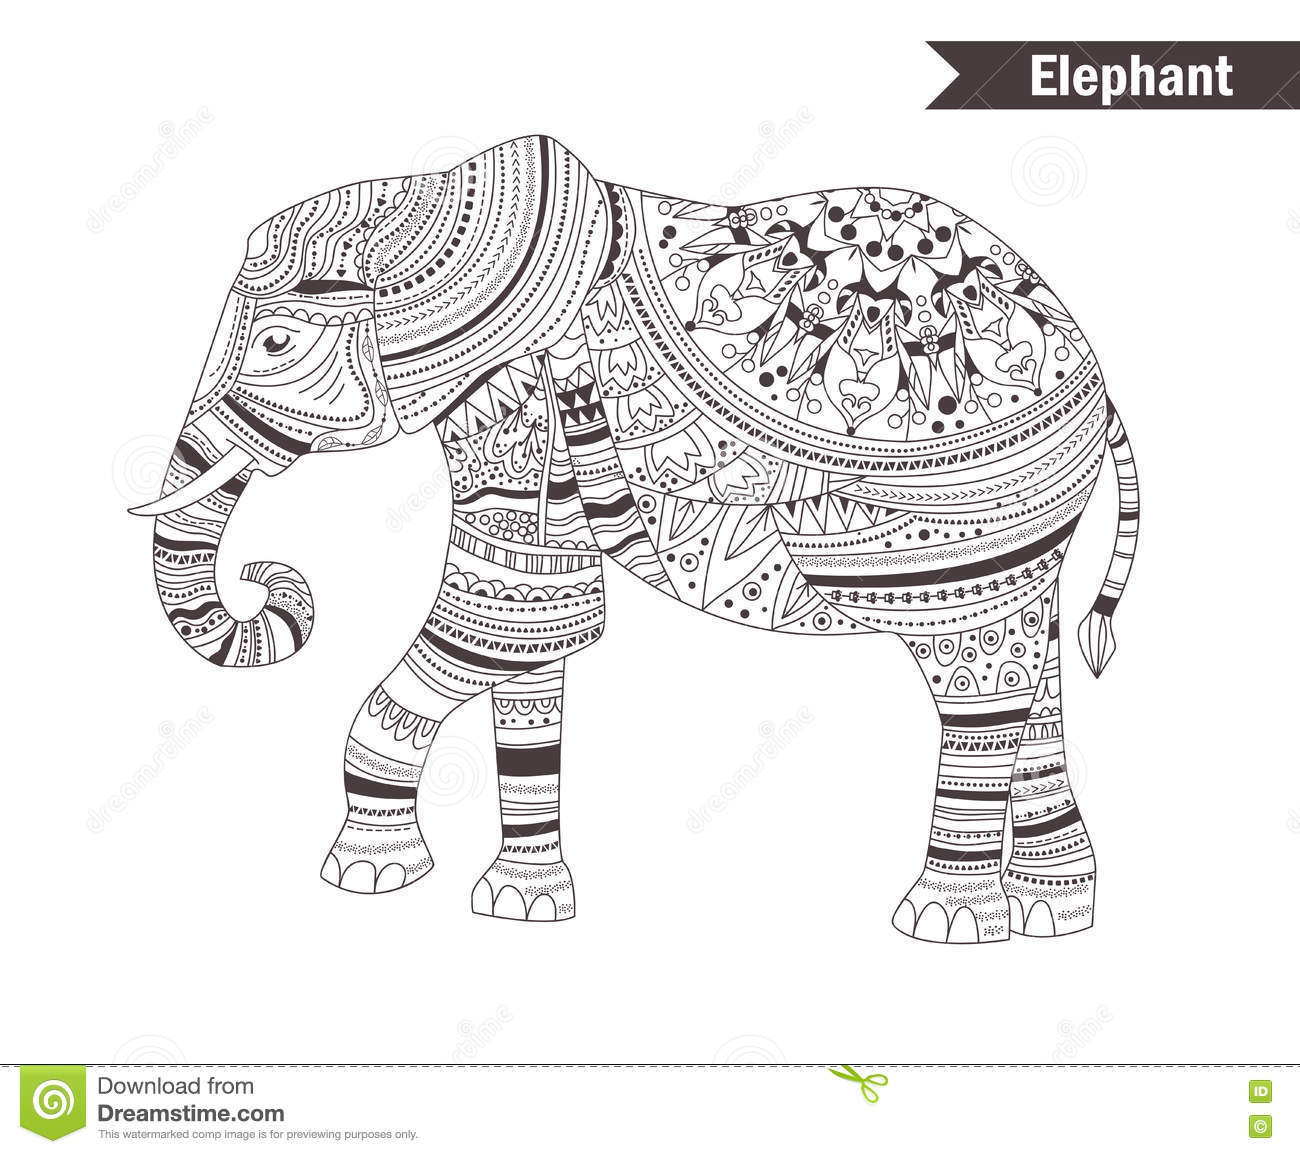 Elephant. coloring book stock vector. Illustration of abstract ...